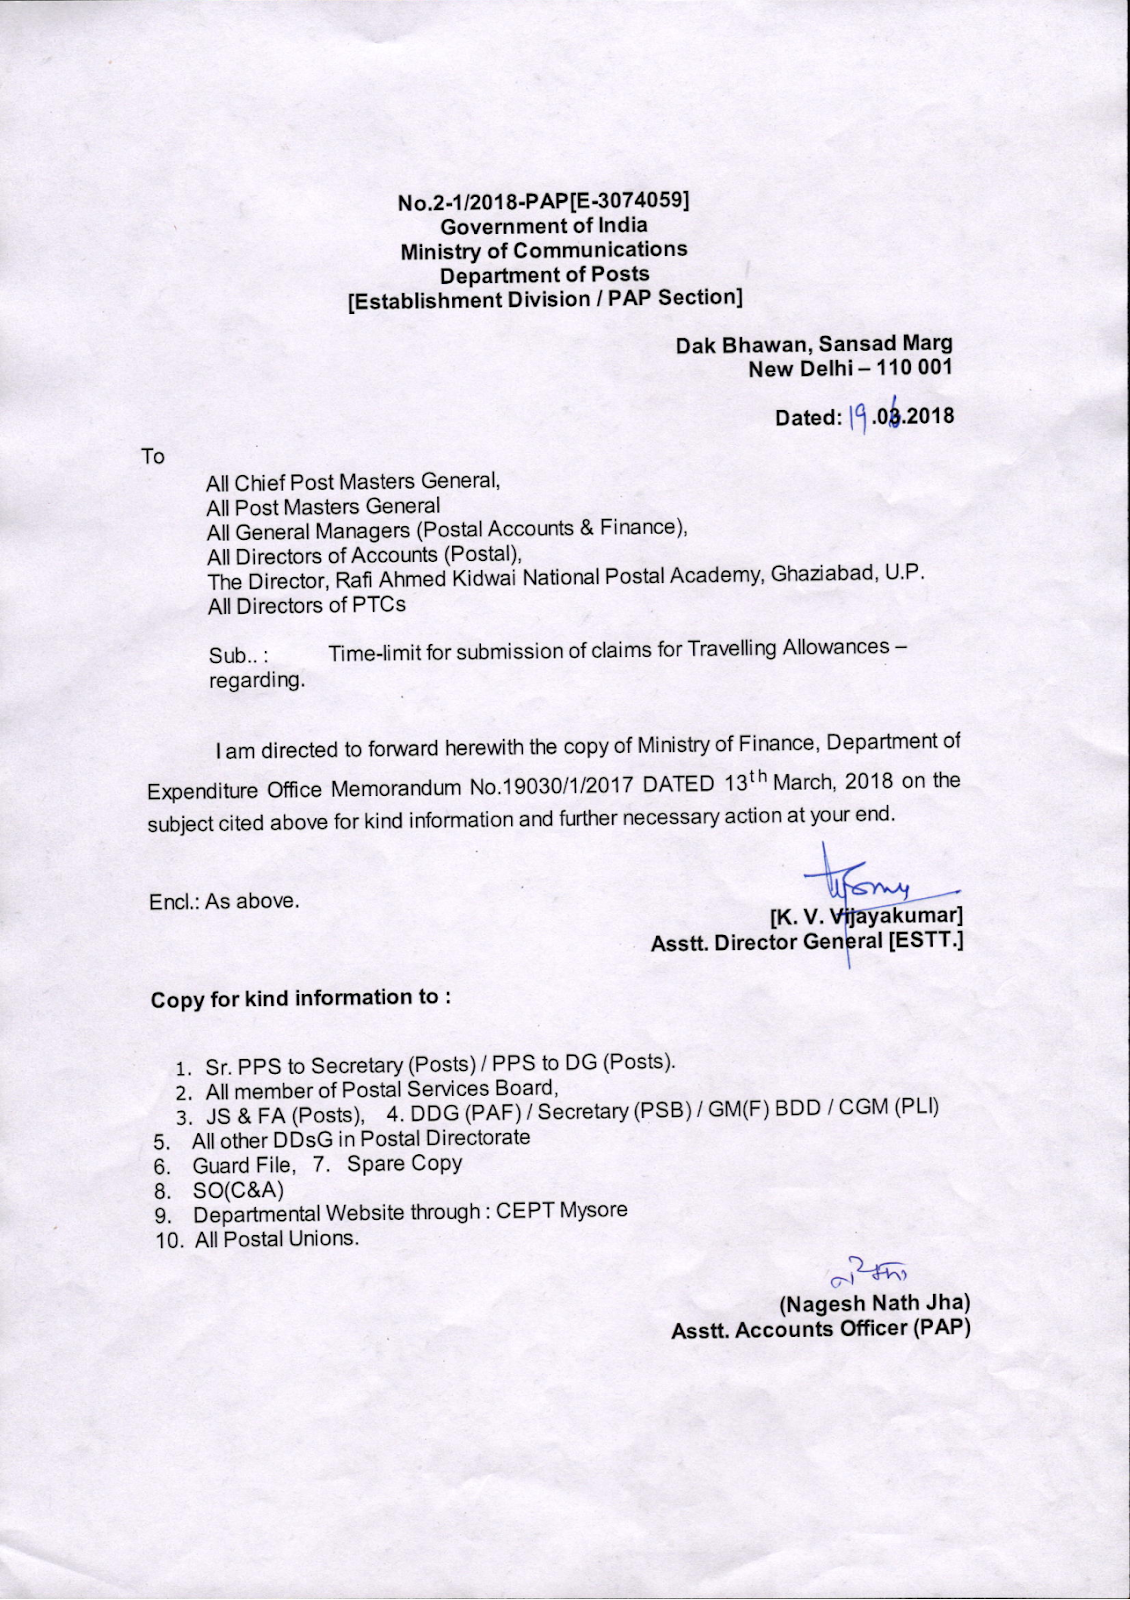 Post Order – Time-limit for submission of claims for